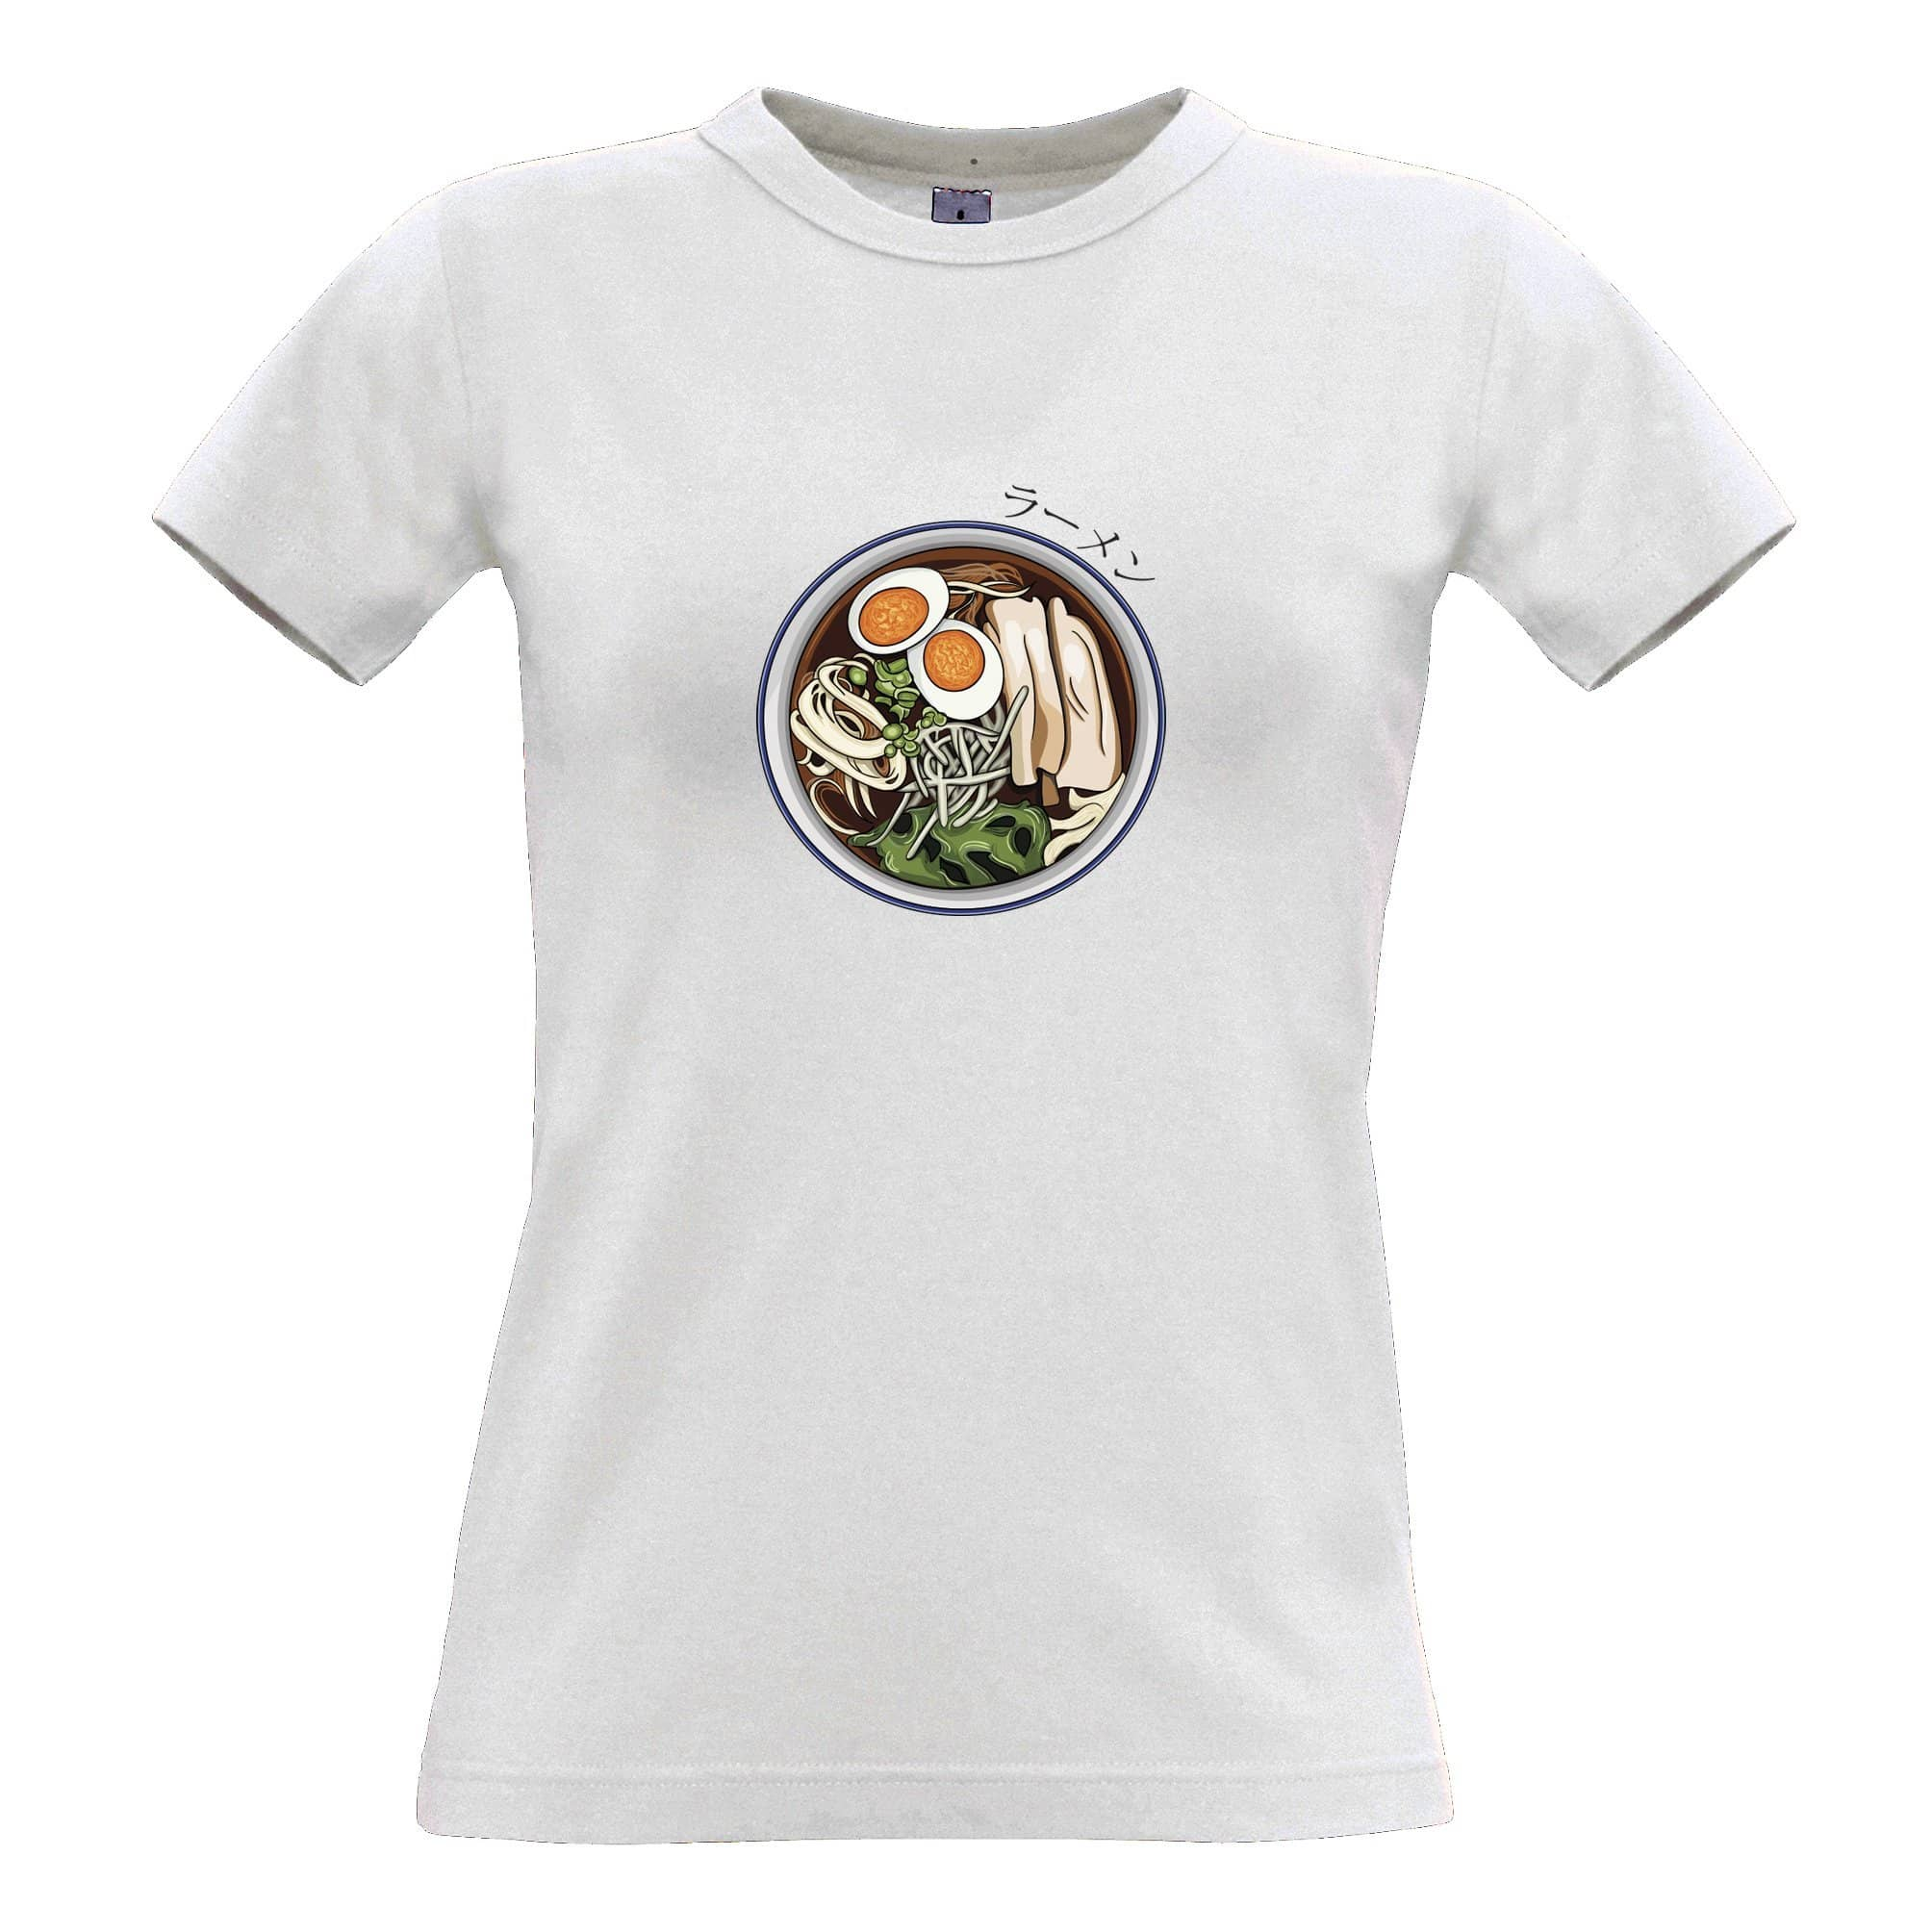 Ethnic Food Womens T Shirt Ramen Noodles And Japanese Text